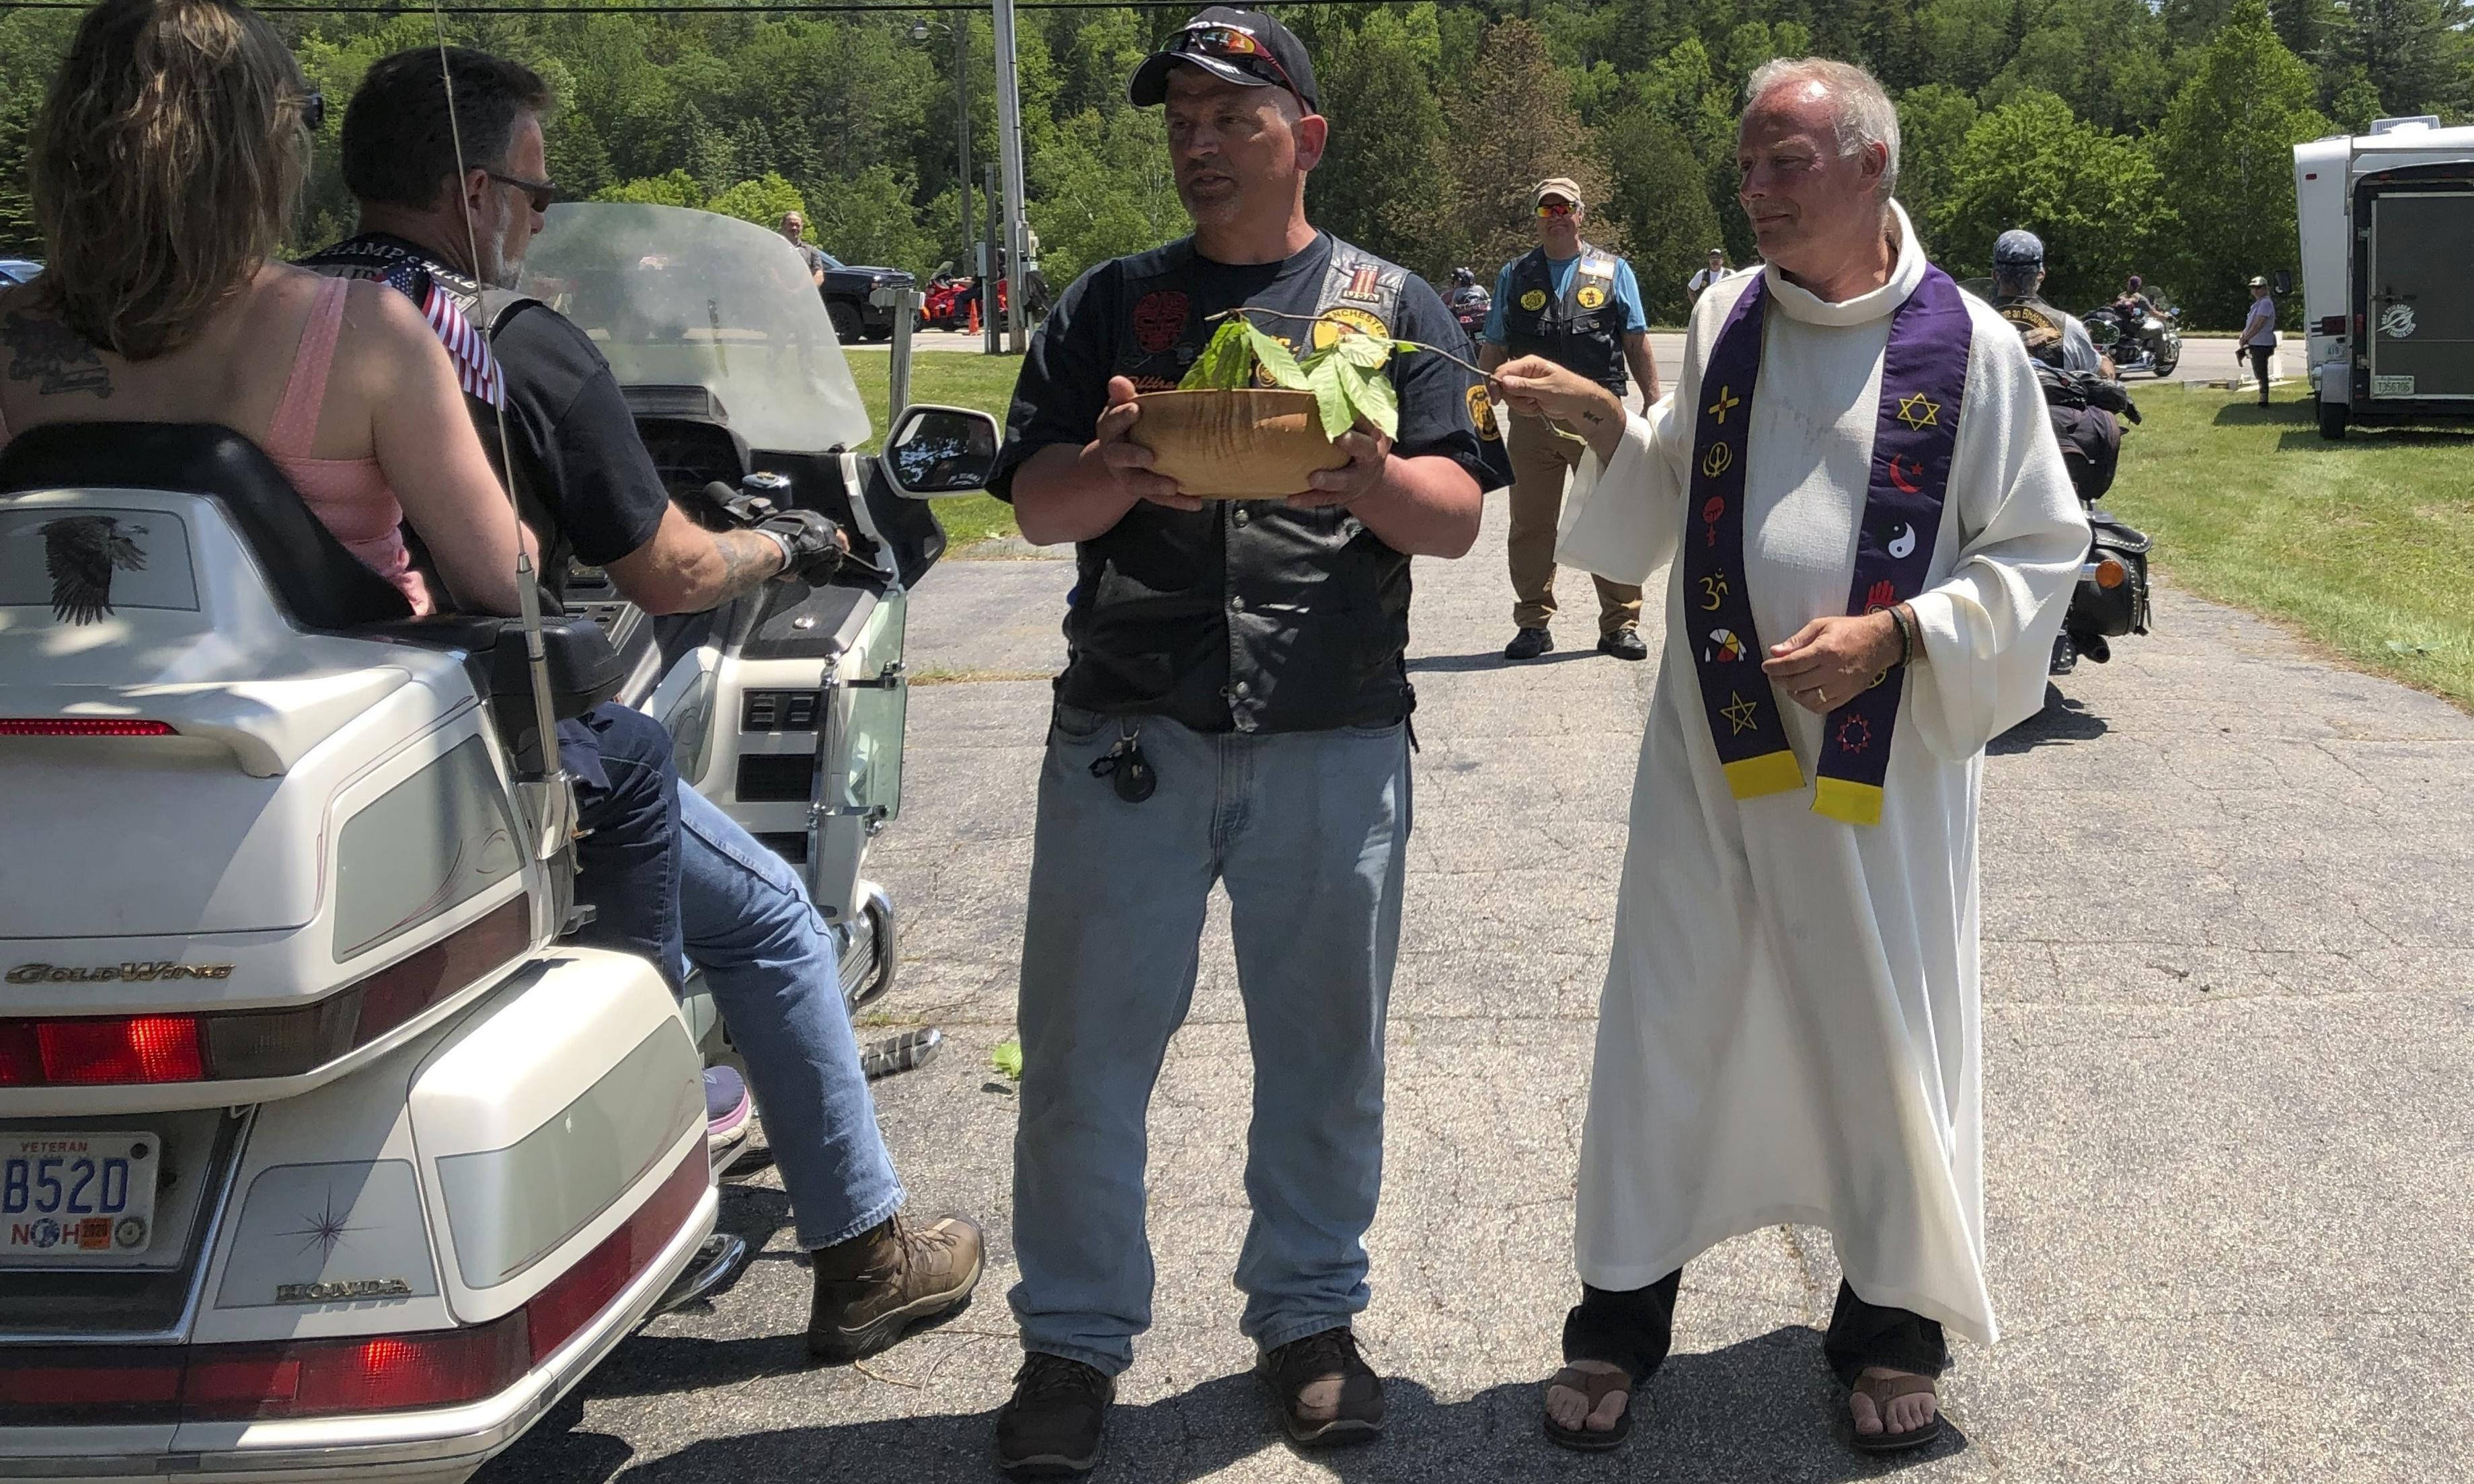 Blessing of the Bikes mourns seven killed in fiery New Hampshire crash